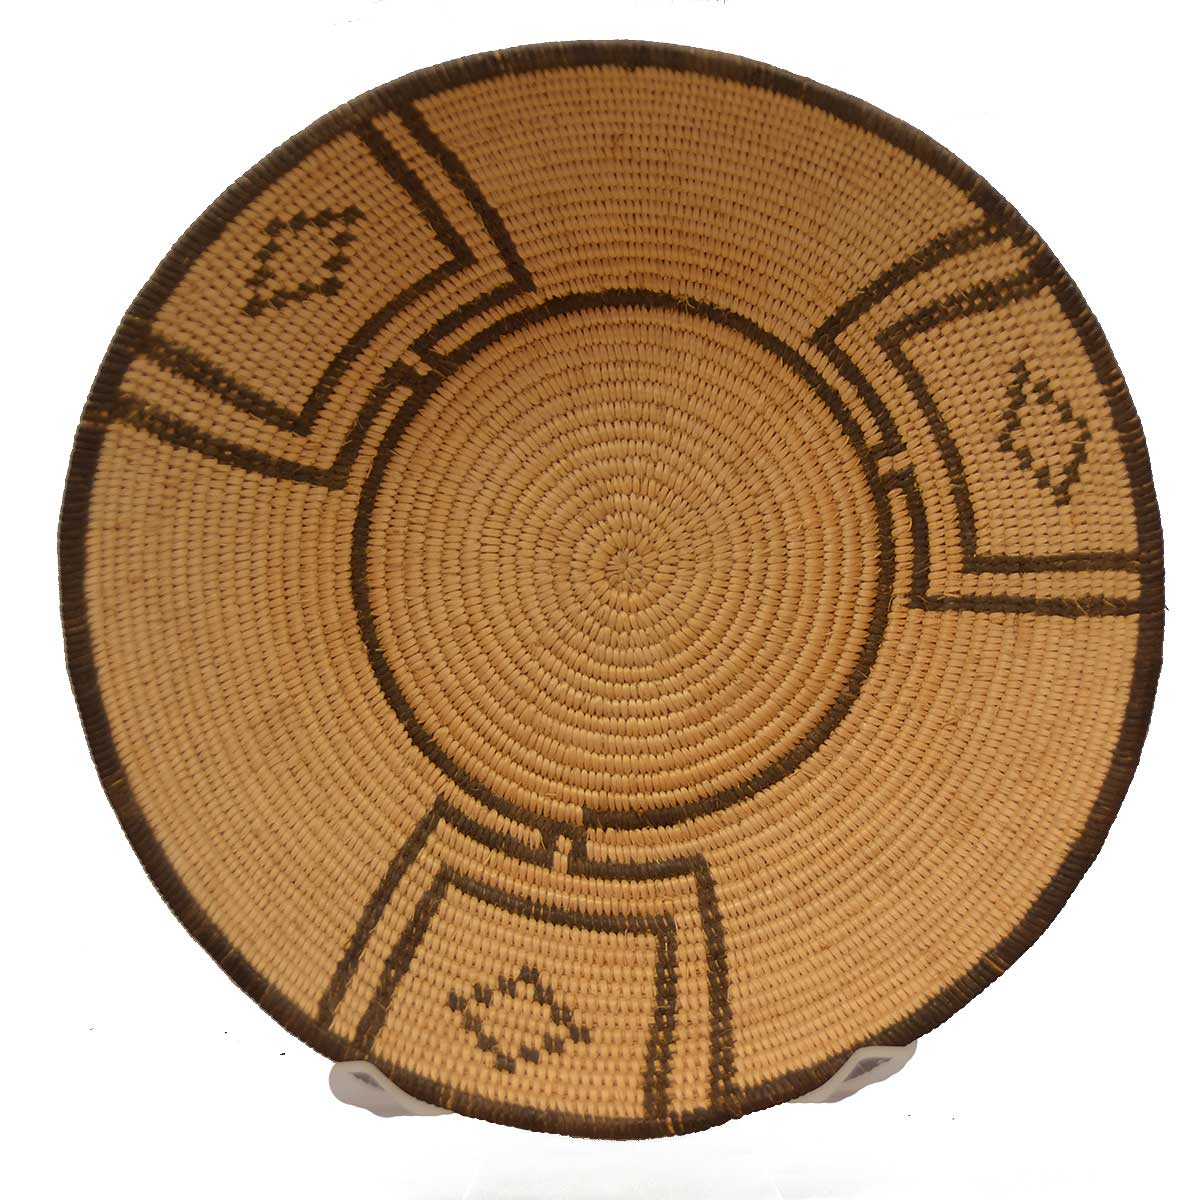 American Indian Basketry: Chemehuevi Symmetrical Design ca 1930's